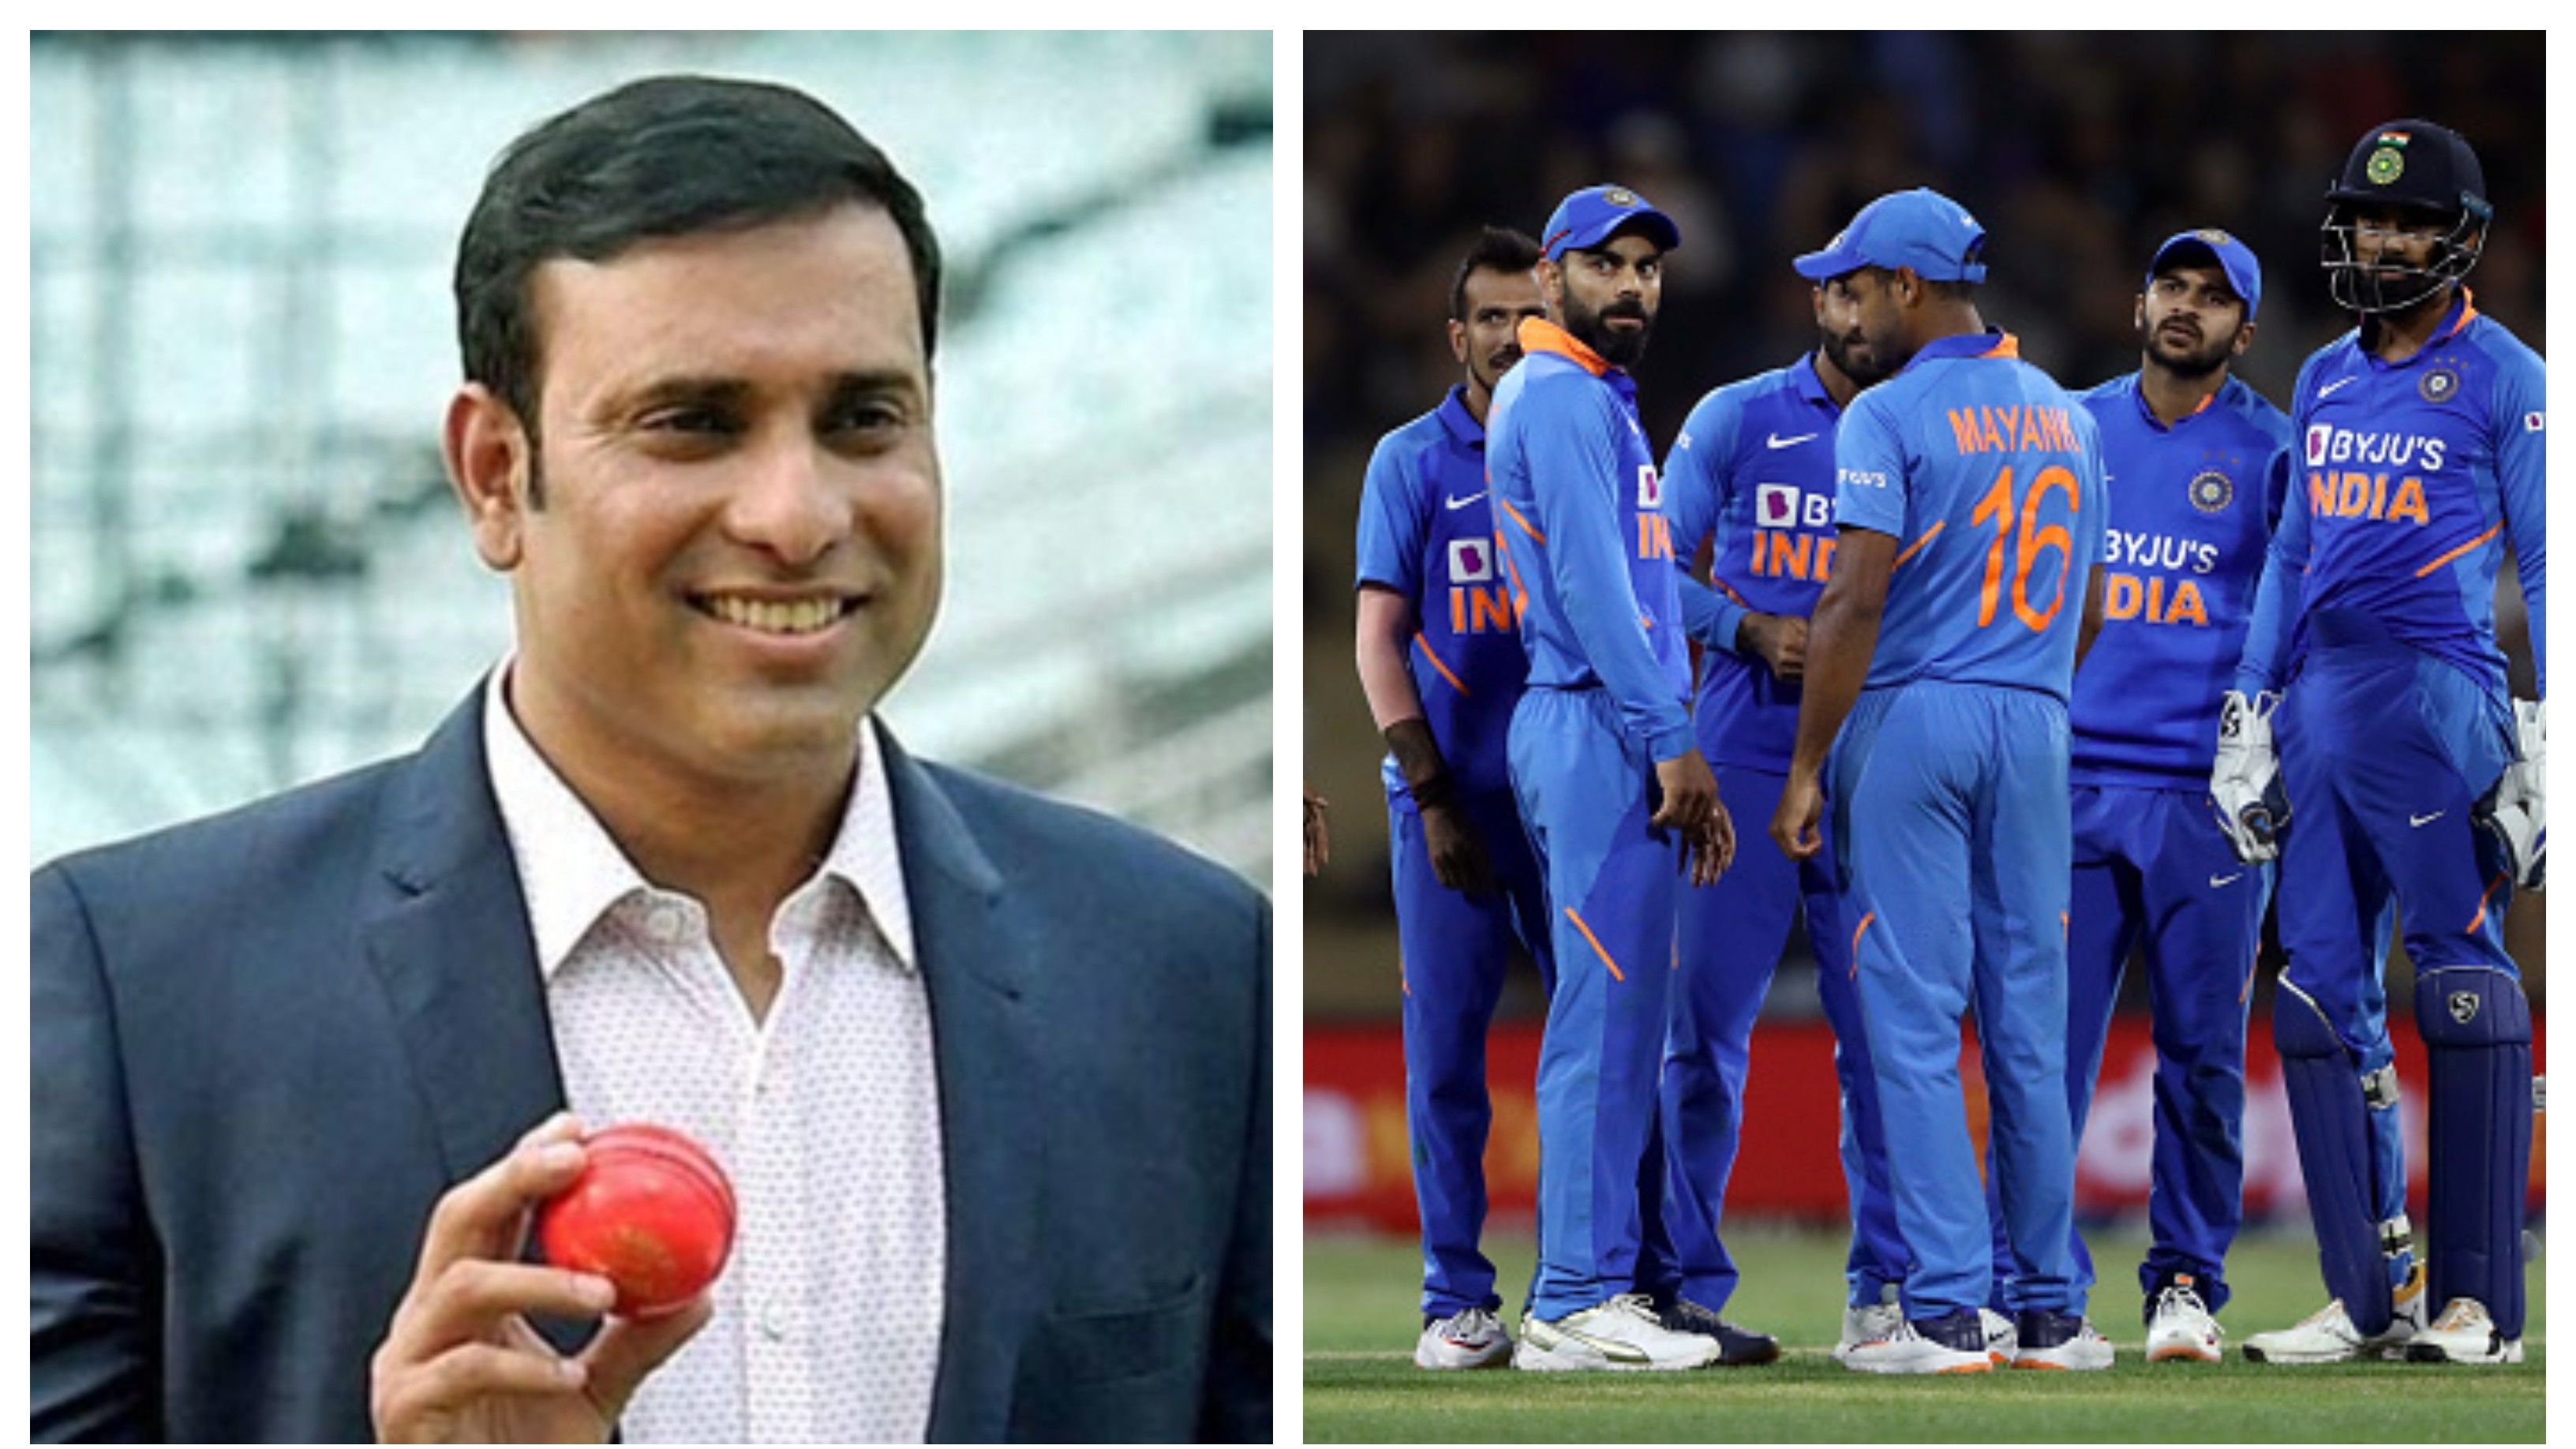 NZ v IND 2020: Laxman critical of India's disappointing fielding performances